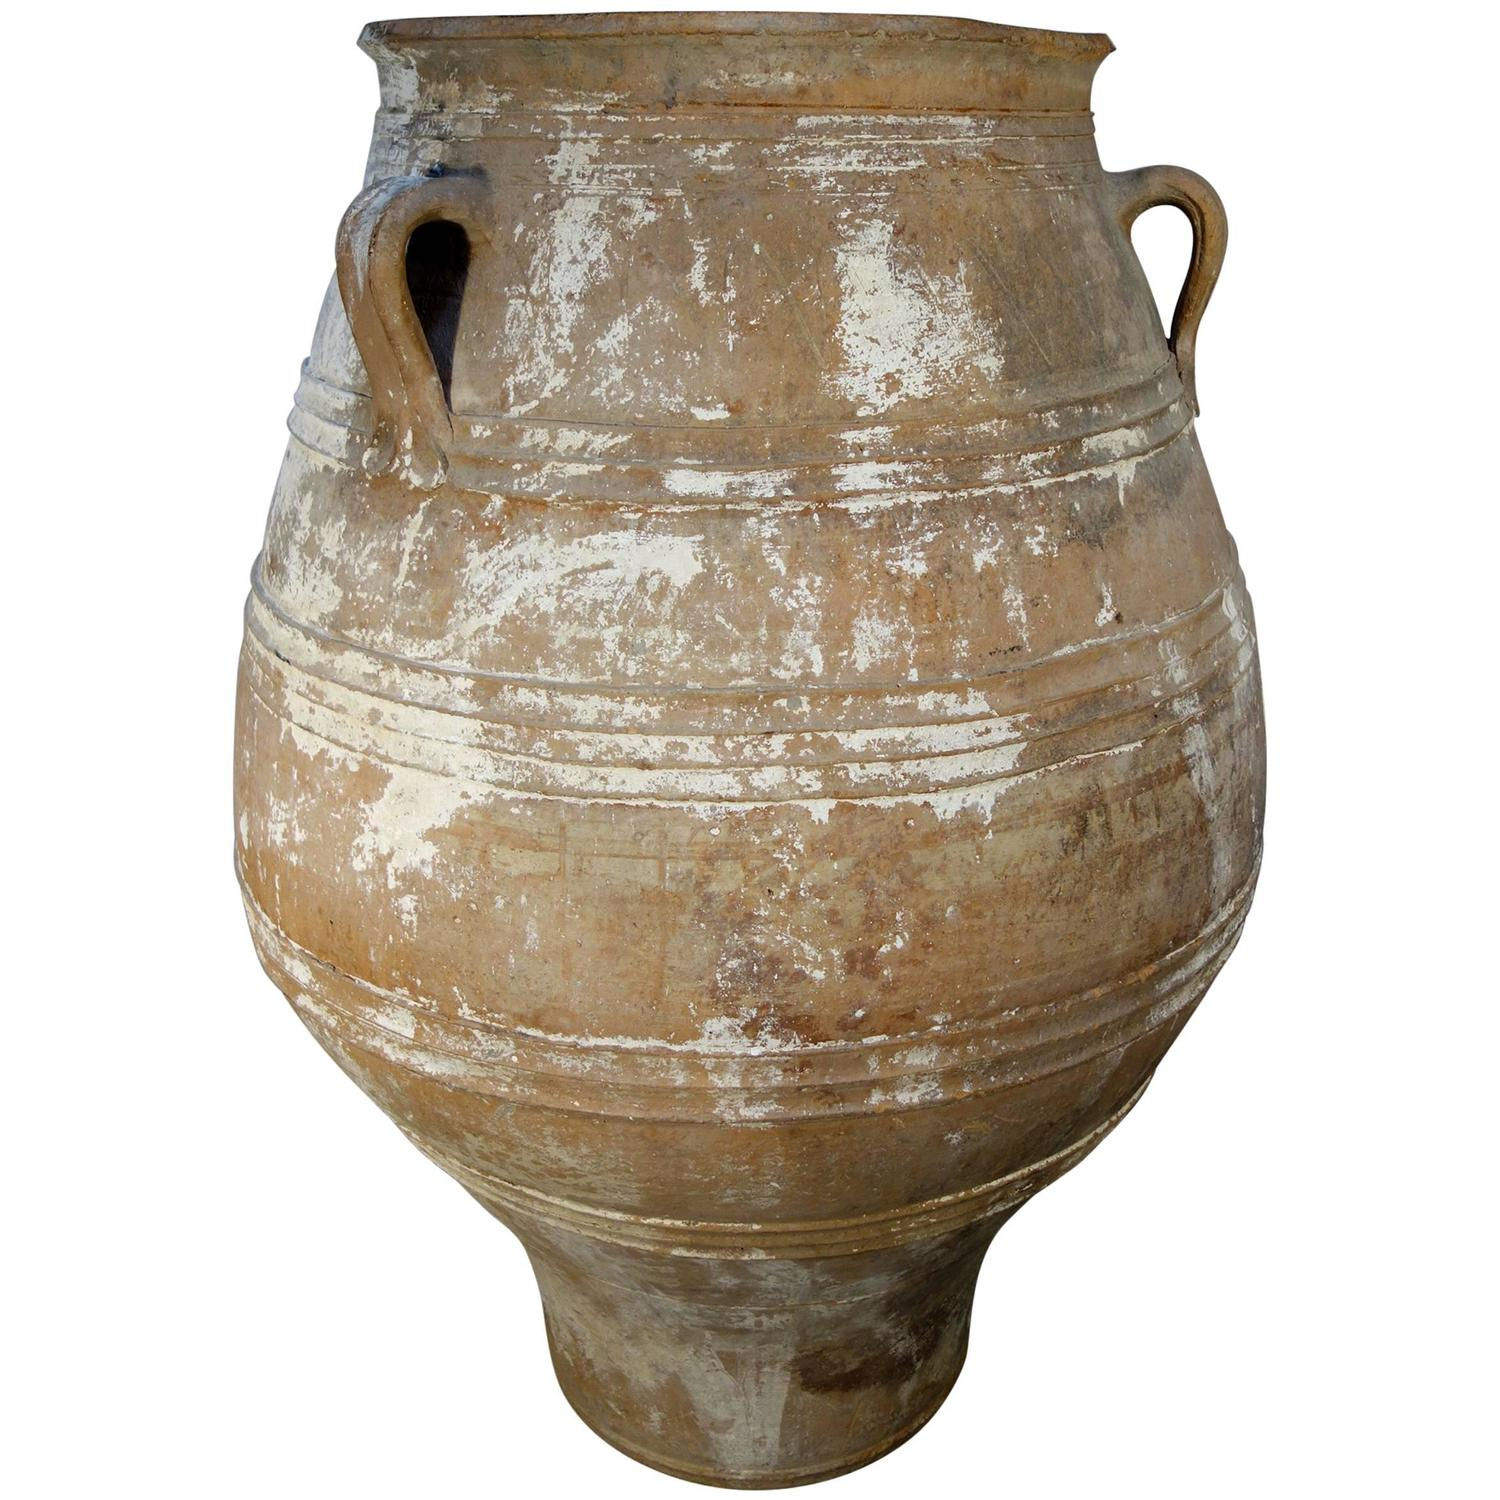 Terracotta planters and jardinieres 151 for sale at 1stdibs 19th century antique large mediterranean terracotta amphora jar white patina reviewsmspy